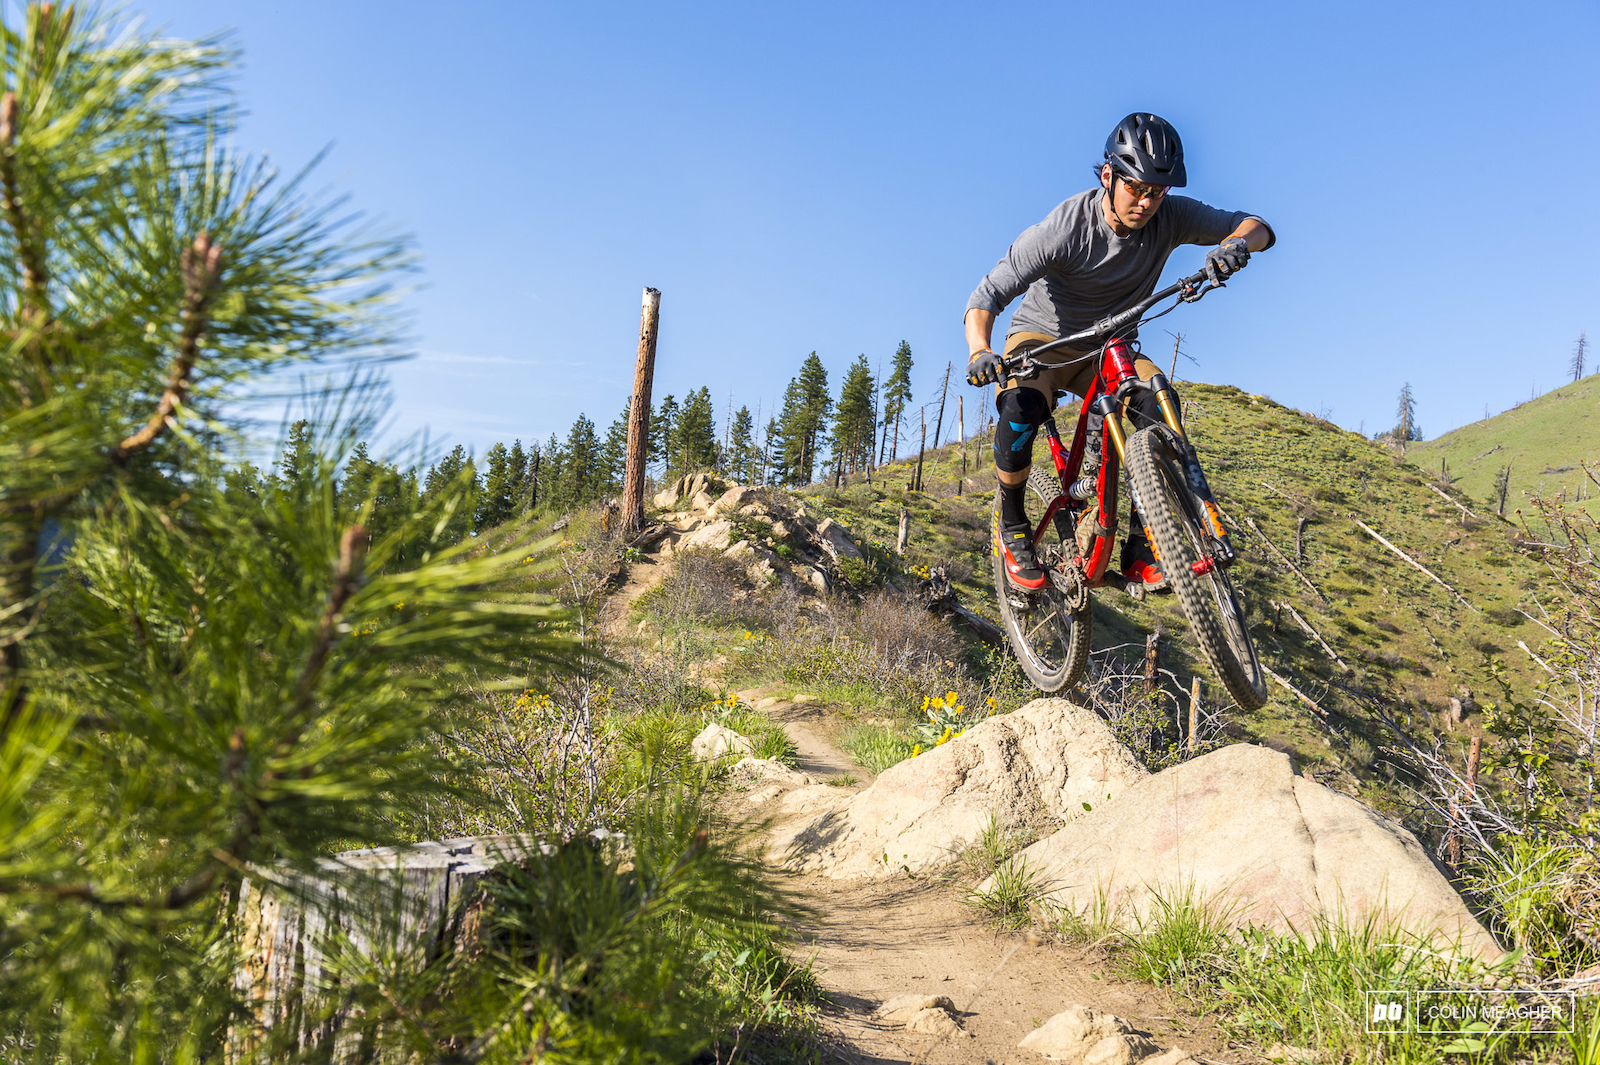 Jameson Florence riding trails in Leavenworth WA